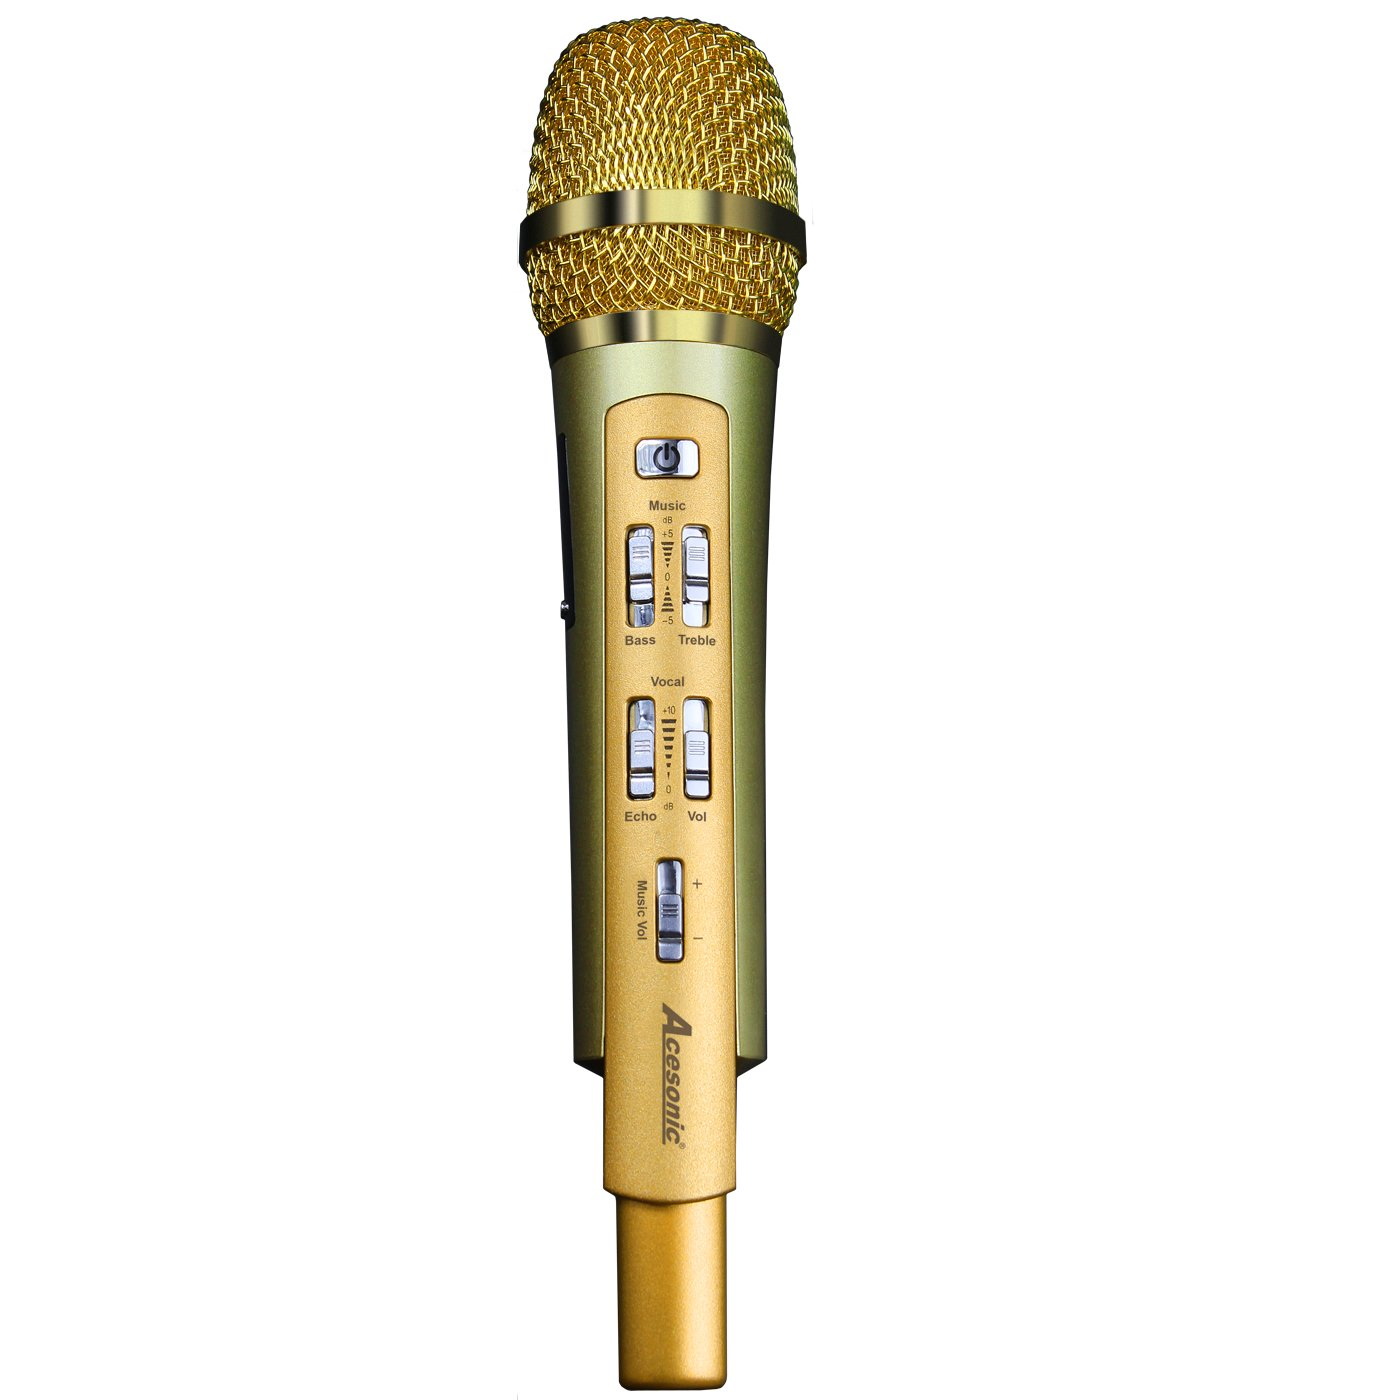 Acesonic RadioStar Karaoke Microphone with Bluetooth & FM Transmitter Use with your Smartphone